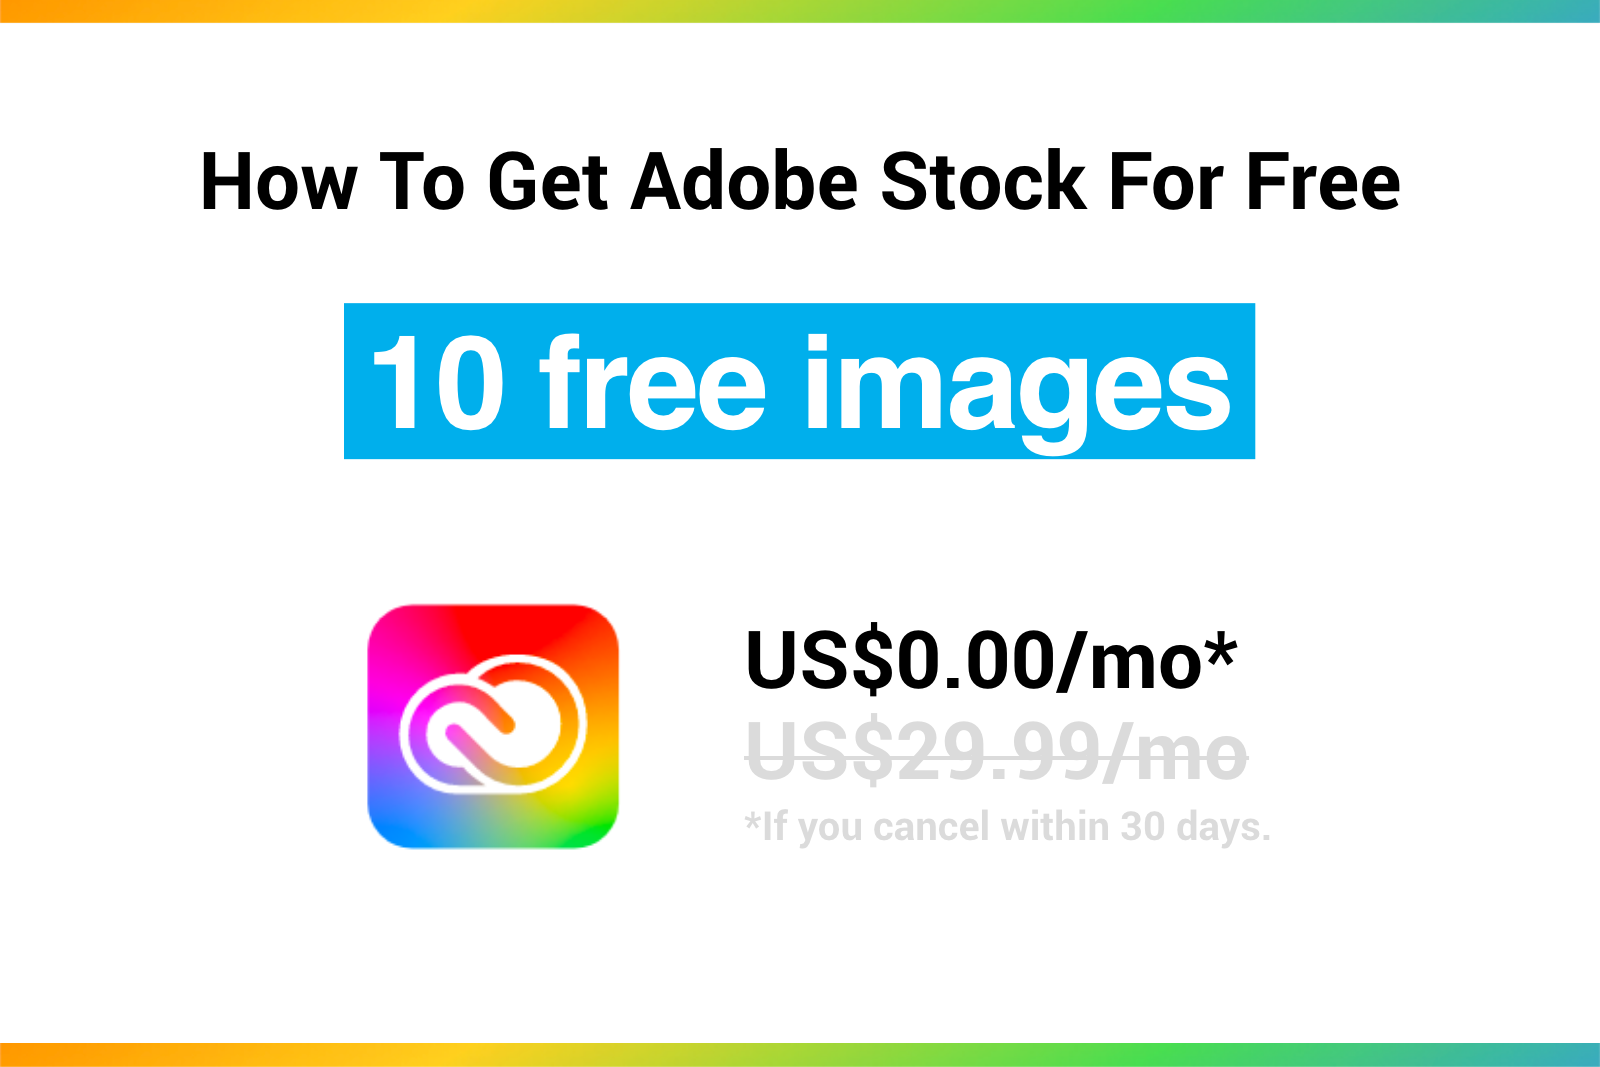 Adobe Stock Discount—How to get 10 free images from Adobe.